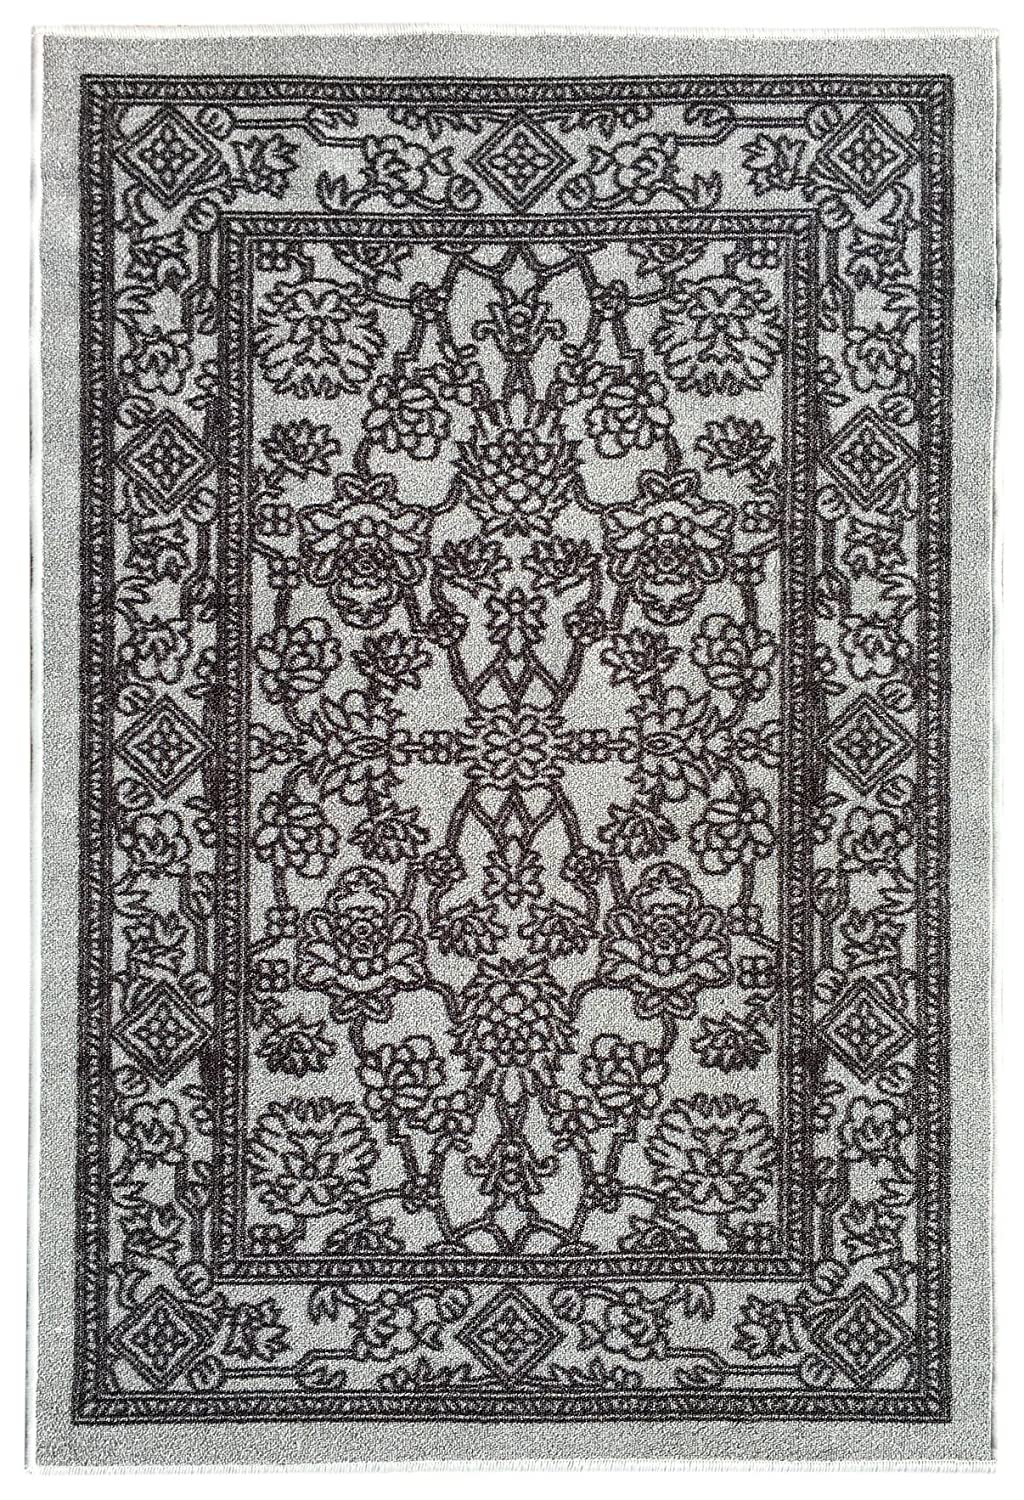 Kapaqua Rubber Back Non-Slip 2'8 x 10' Fancy Egyptian Print Traditional Grey Long Runner Rug - Rana Collection Kitchen Hallway Entry Pet High Traffic Rug RAN2054-310 2054-3X10